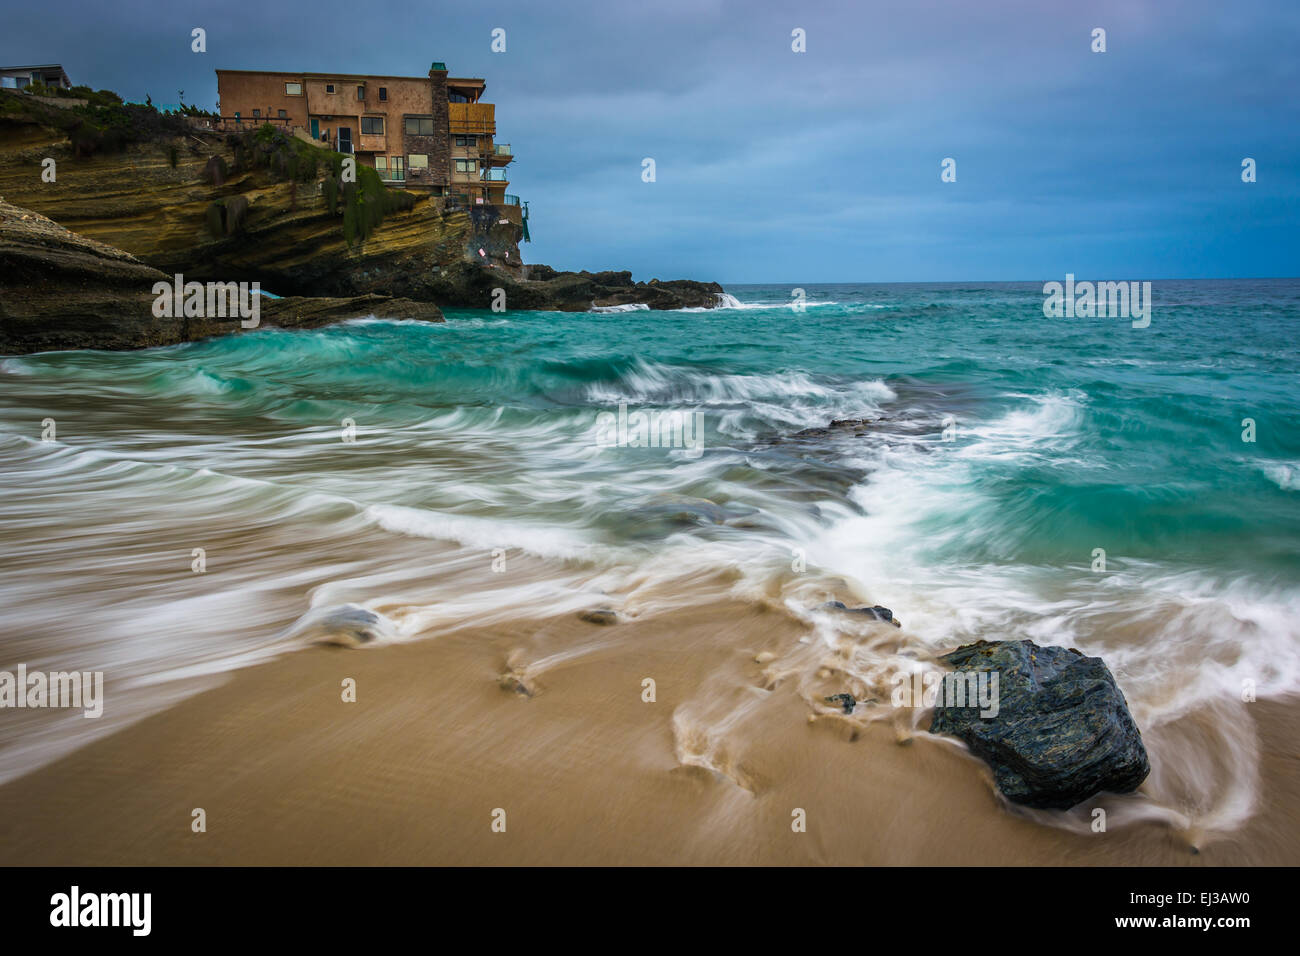 Waves and rocks in the Pacific Ocean at Table Rock Beach, in Laguna Beach, California. Stock Photo